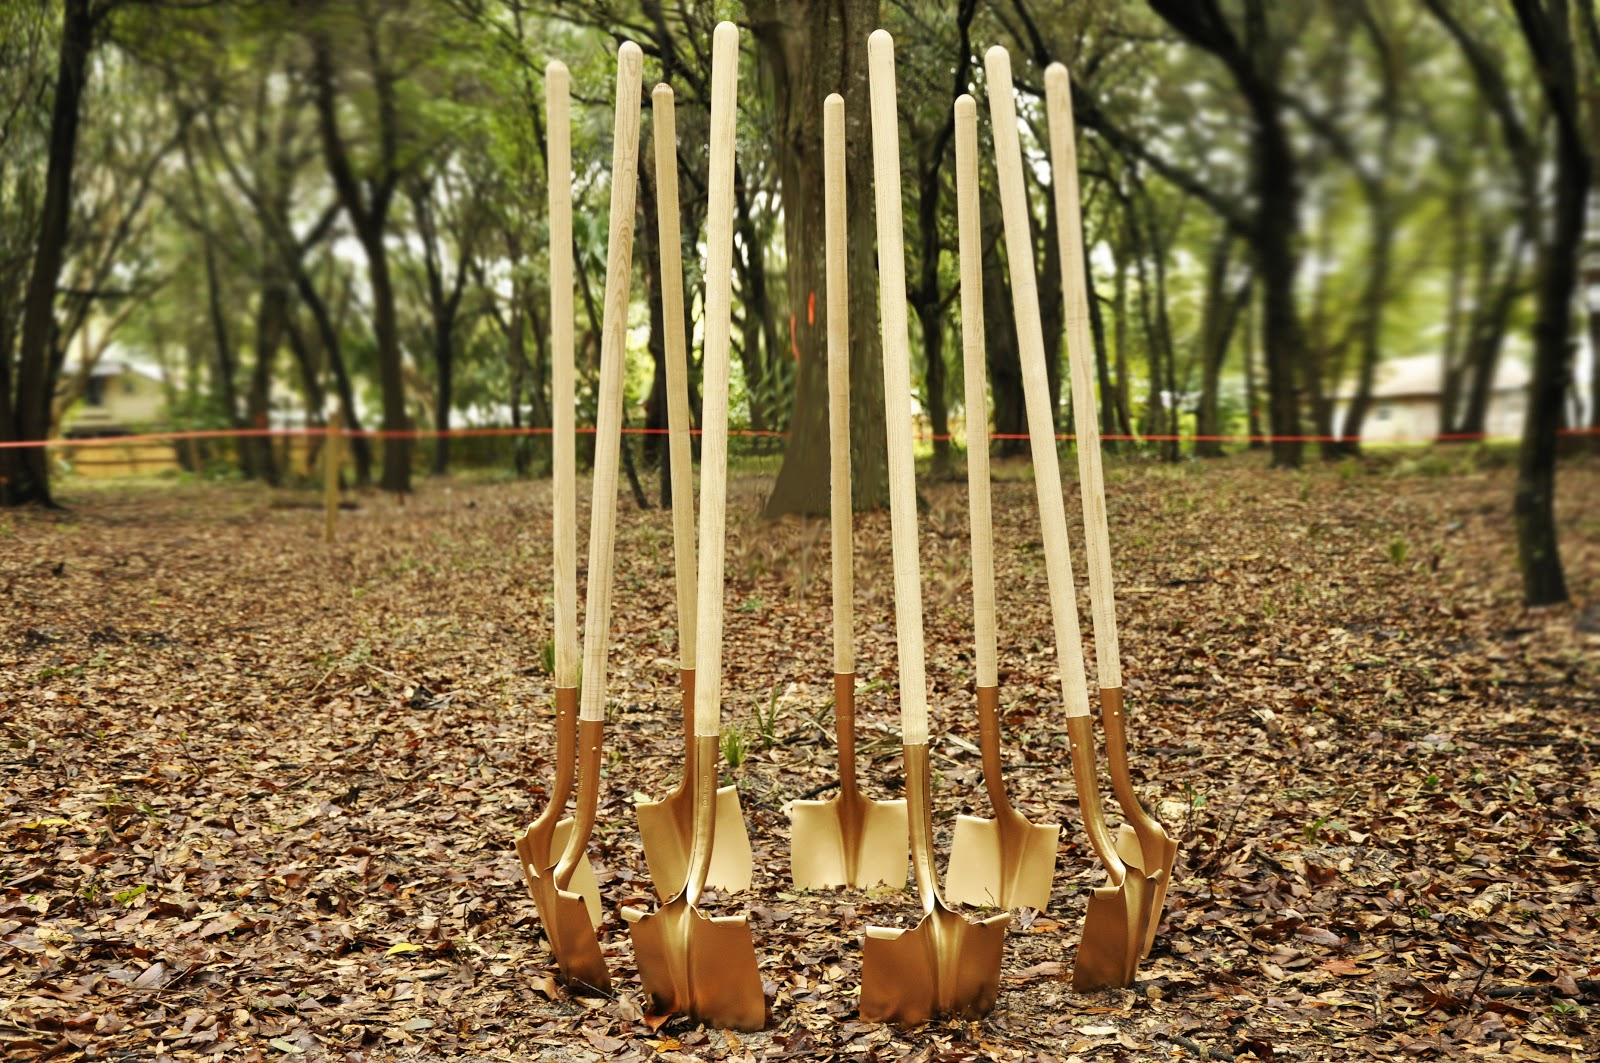 Several shovel placed in a circle on the ground